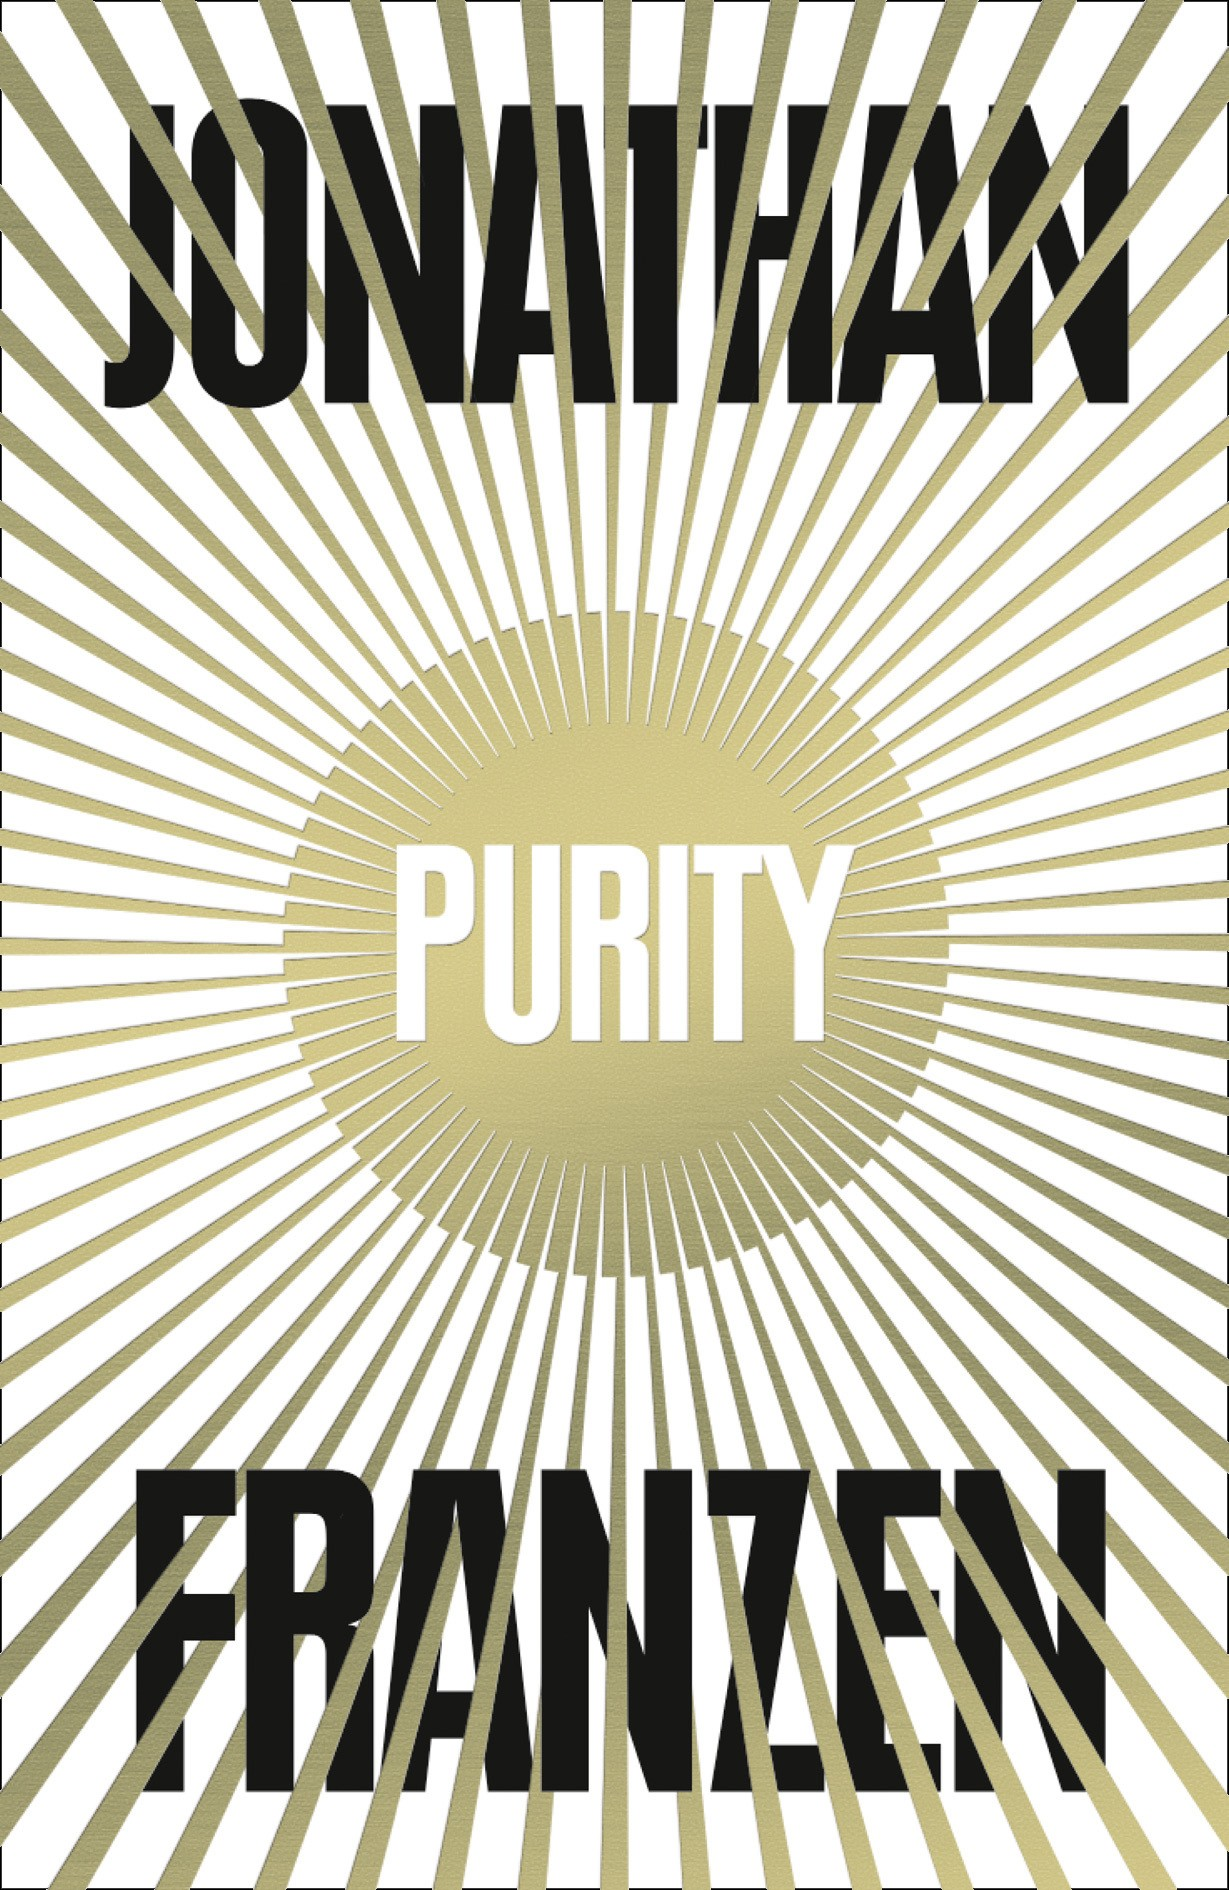 Cover Art for Purity, ISBN: 9780007532766